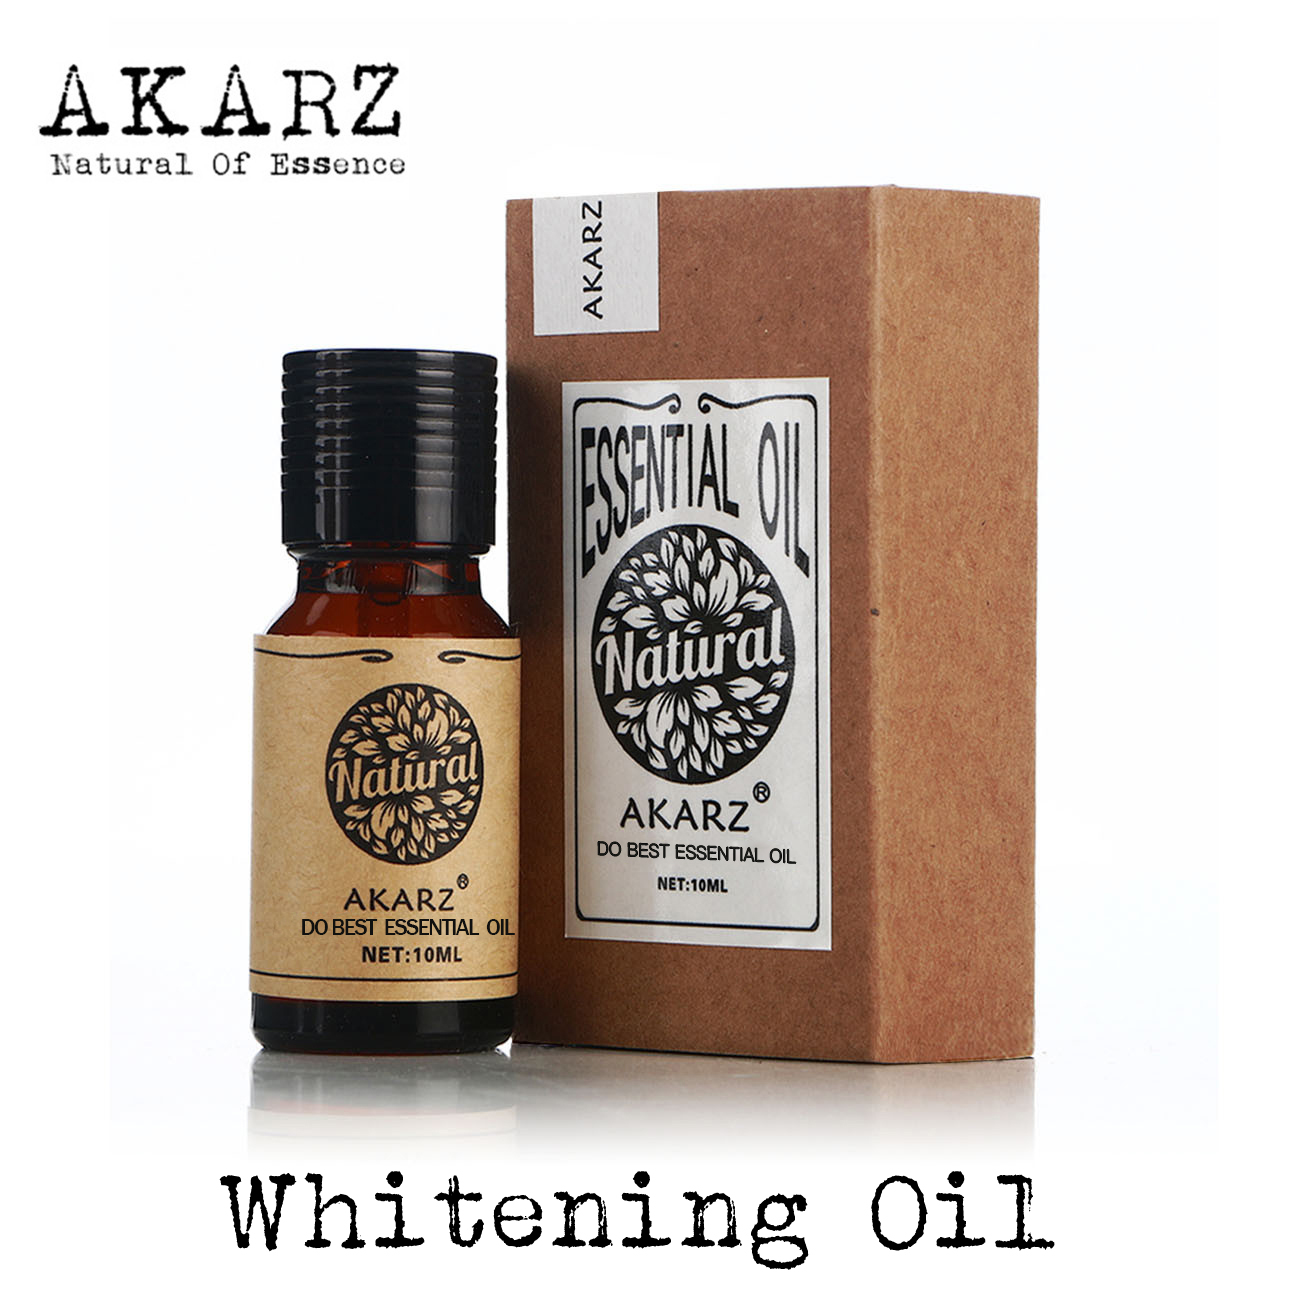 AKARZ Famous brand natural whitening face spot remover essential oil for brighten skin whitening oil facial care essential oils akarz famous brand best set meal patchouli essential oil aromatherapy face body skin care buy 2 get 1